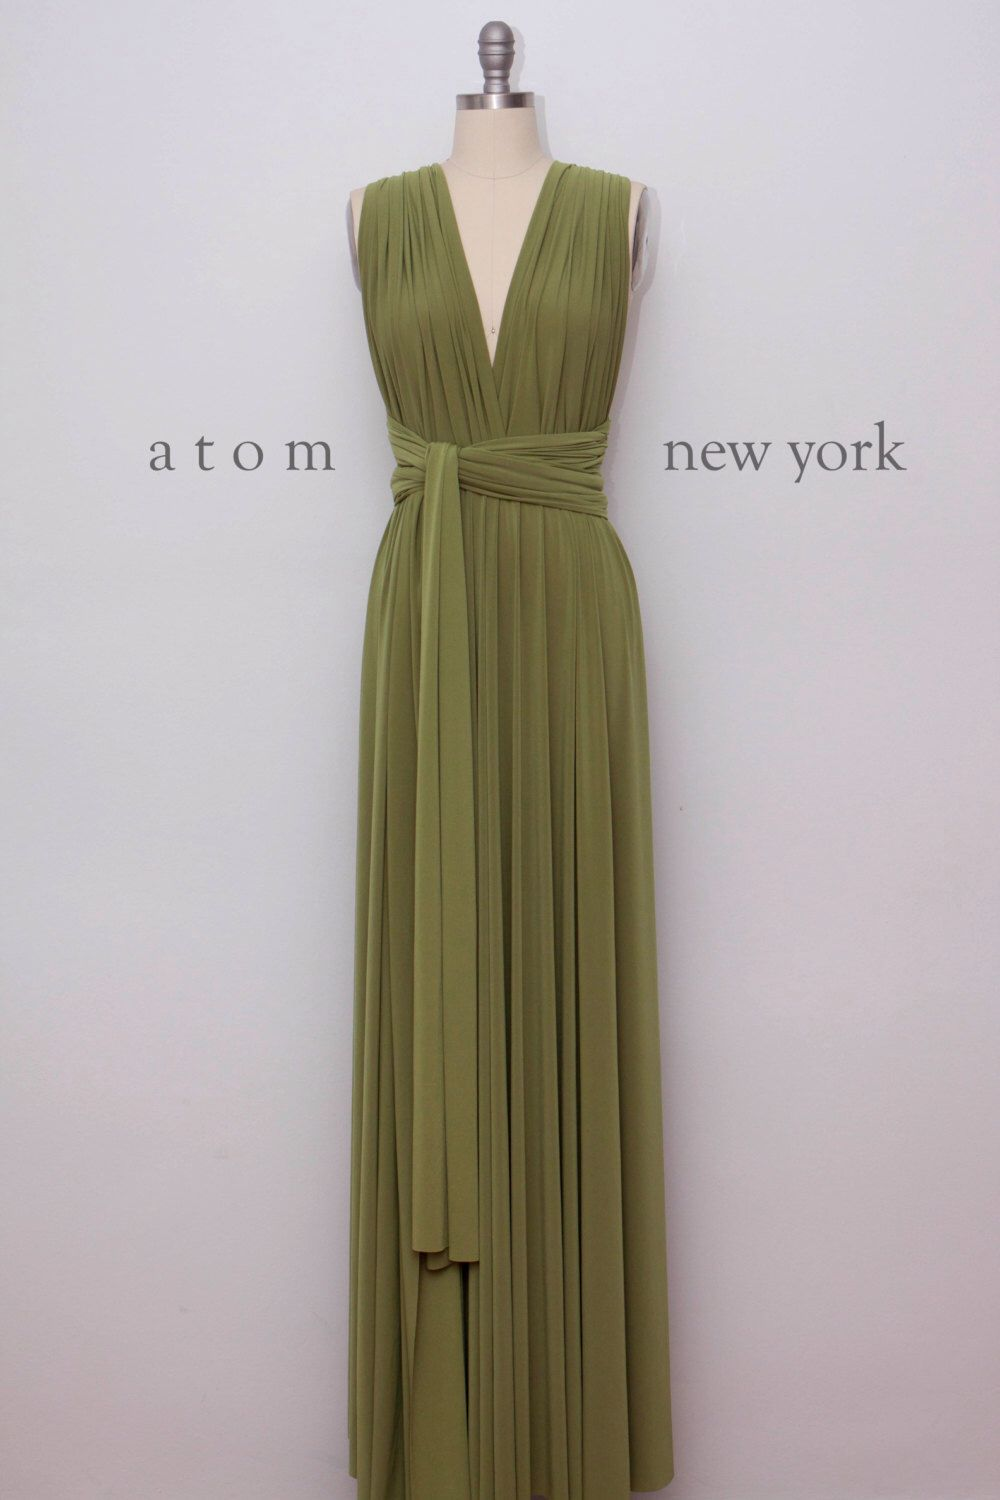 Olive green floor length ball gown long maxi infinity dress